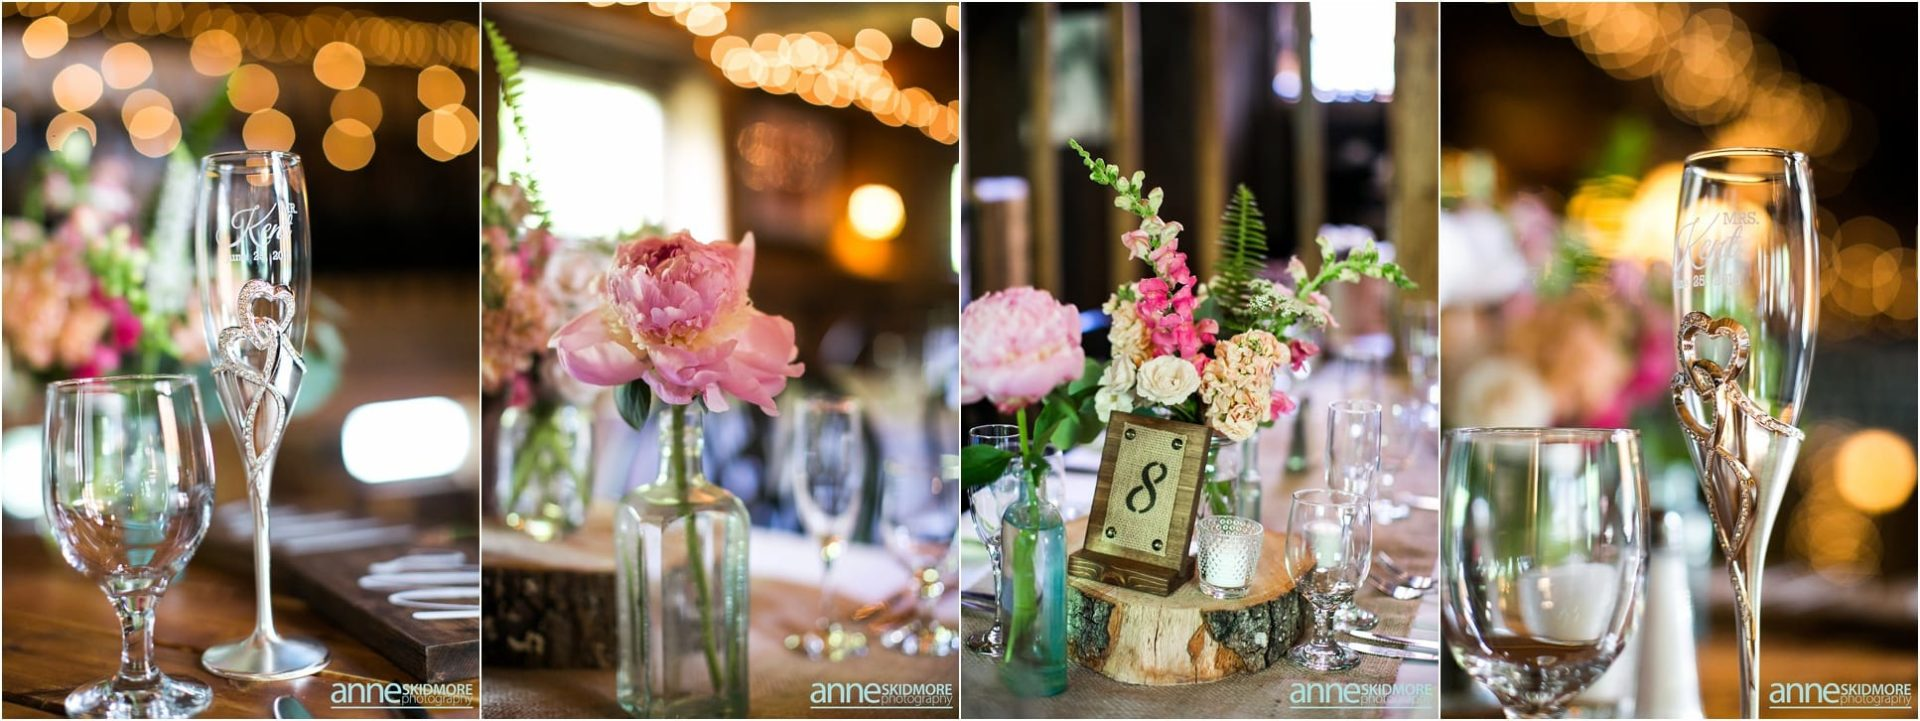 Whitneys_Inn_Wedding_0040